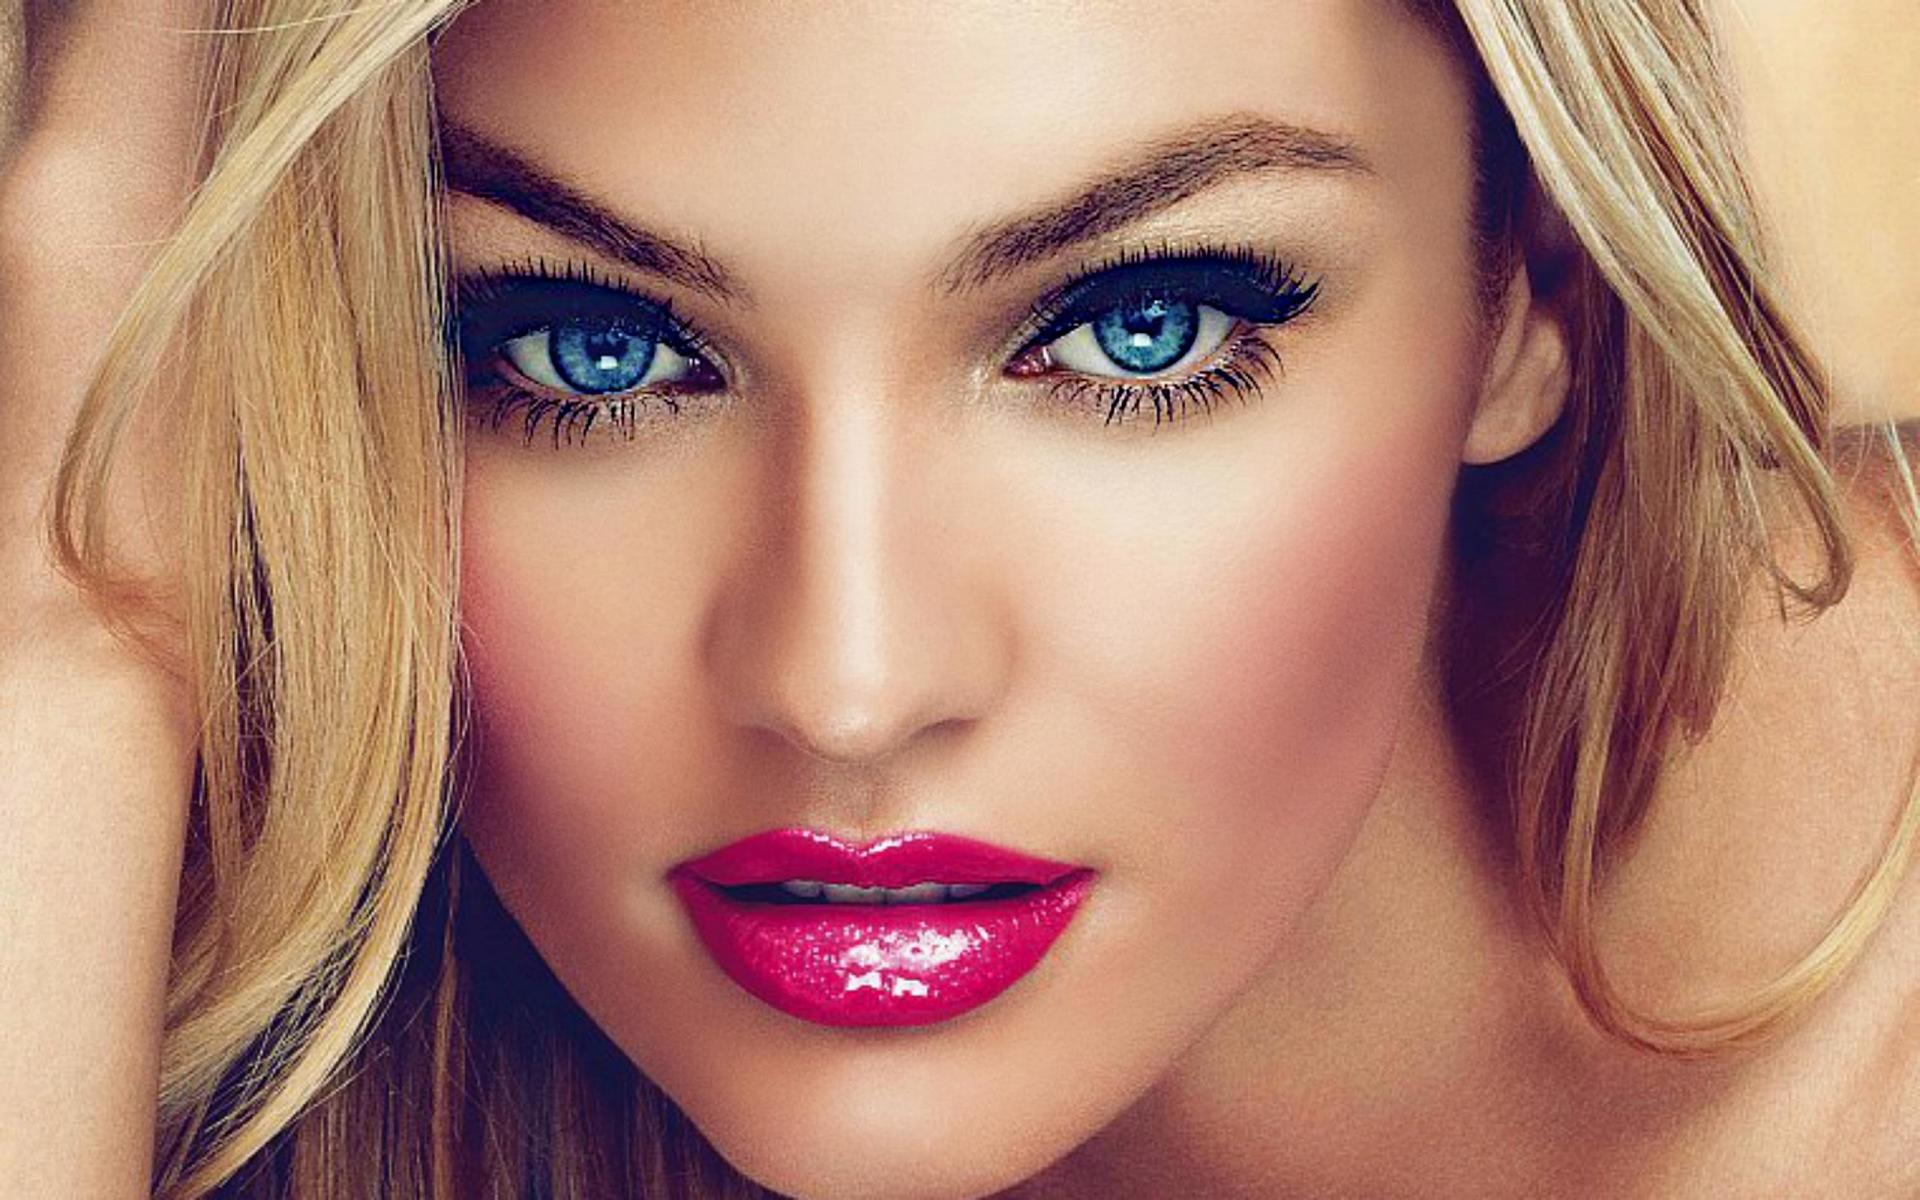 candice swanepoel celebrity faces - photo #38